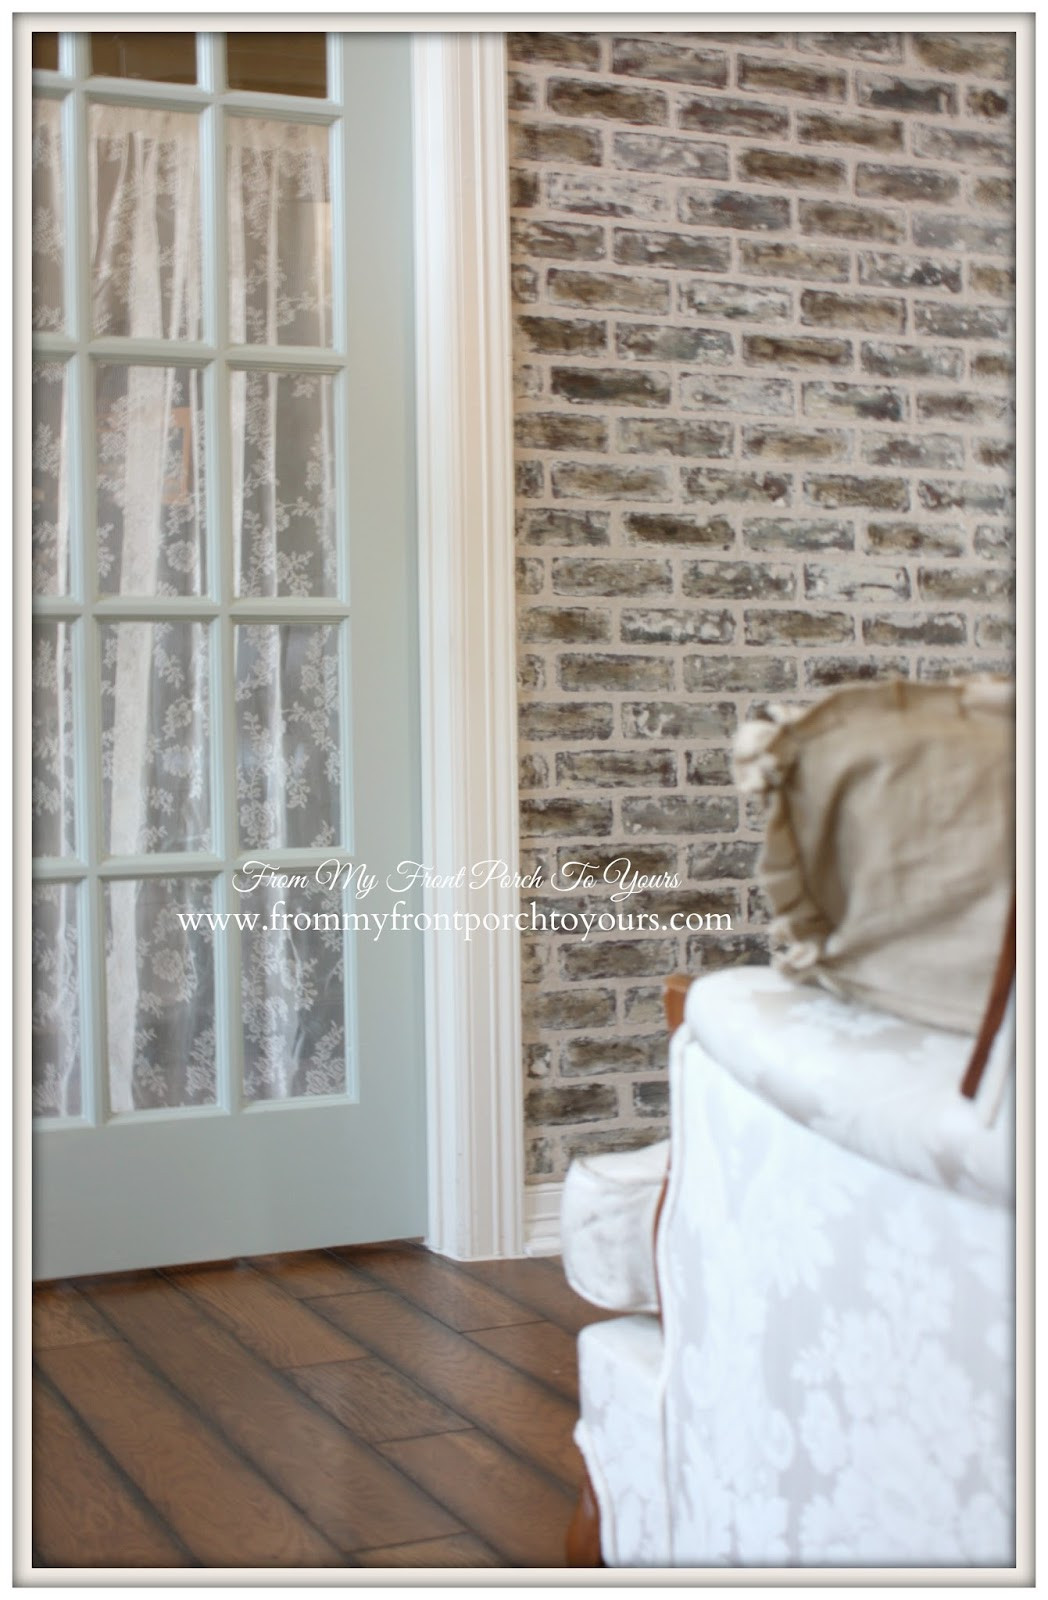 Best ideas about DIY Faux Brick Wall . Save or Pin From My Front Porch To Yours DIY Faux Brick Wall Reveal Now.